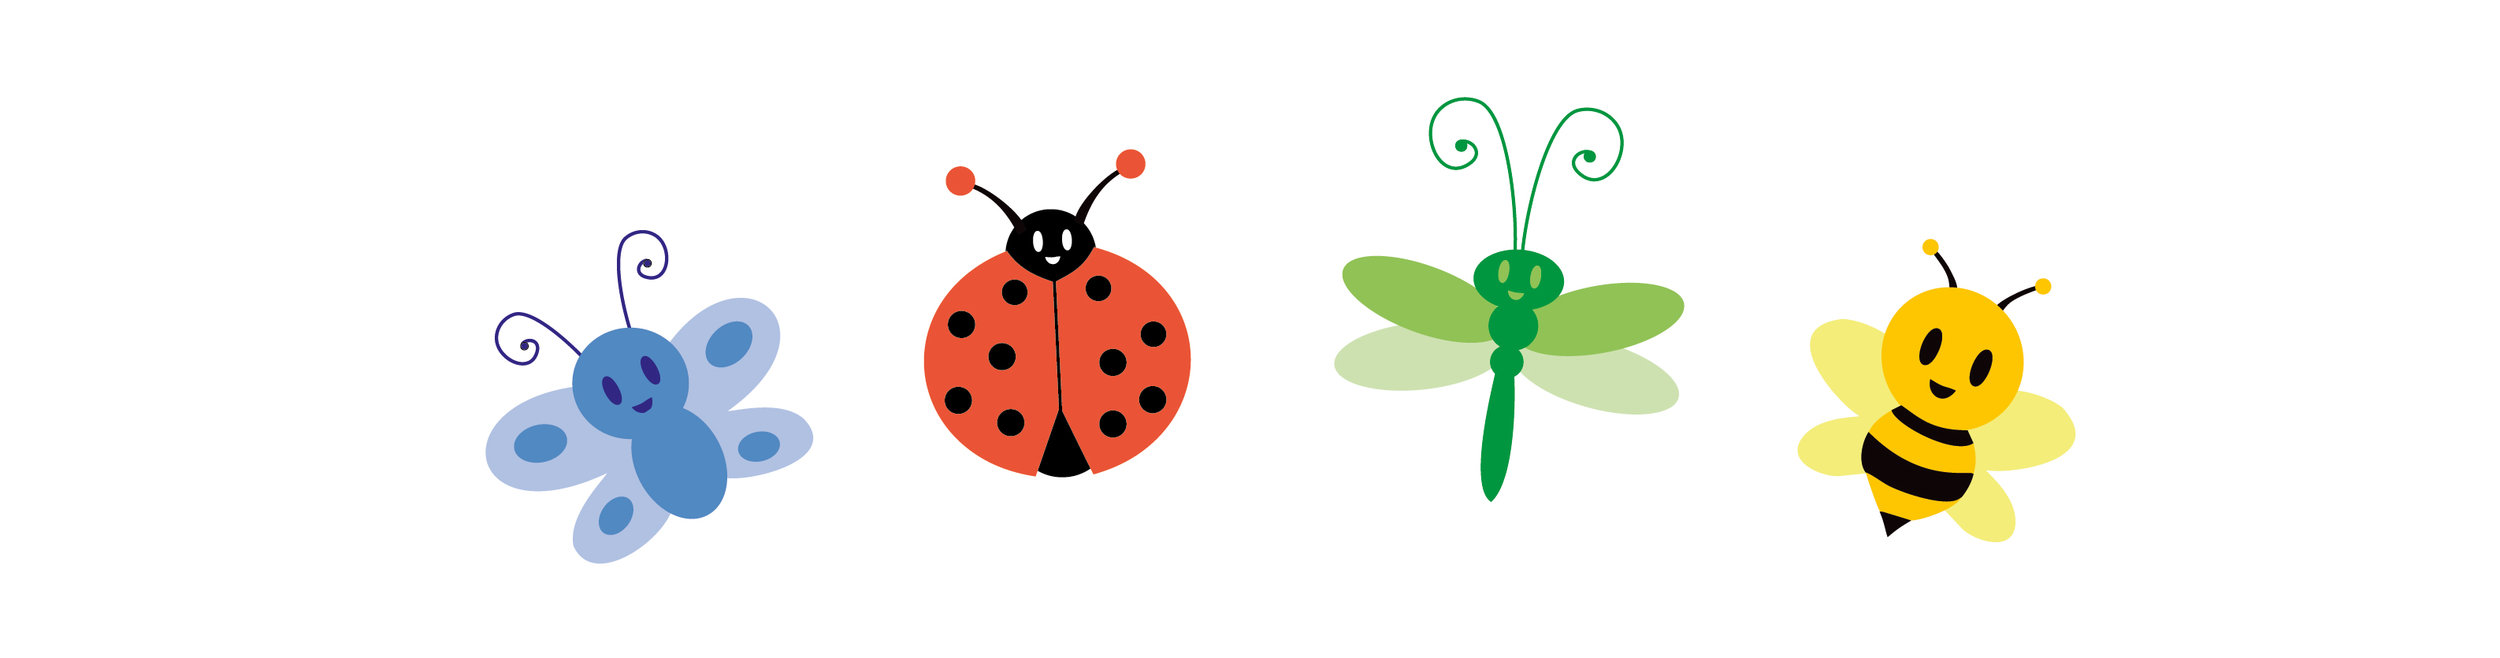 Insects FINAL.jpg